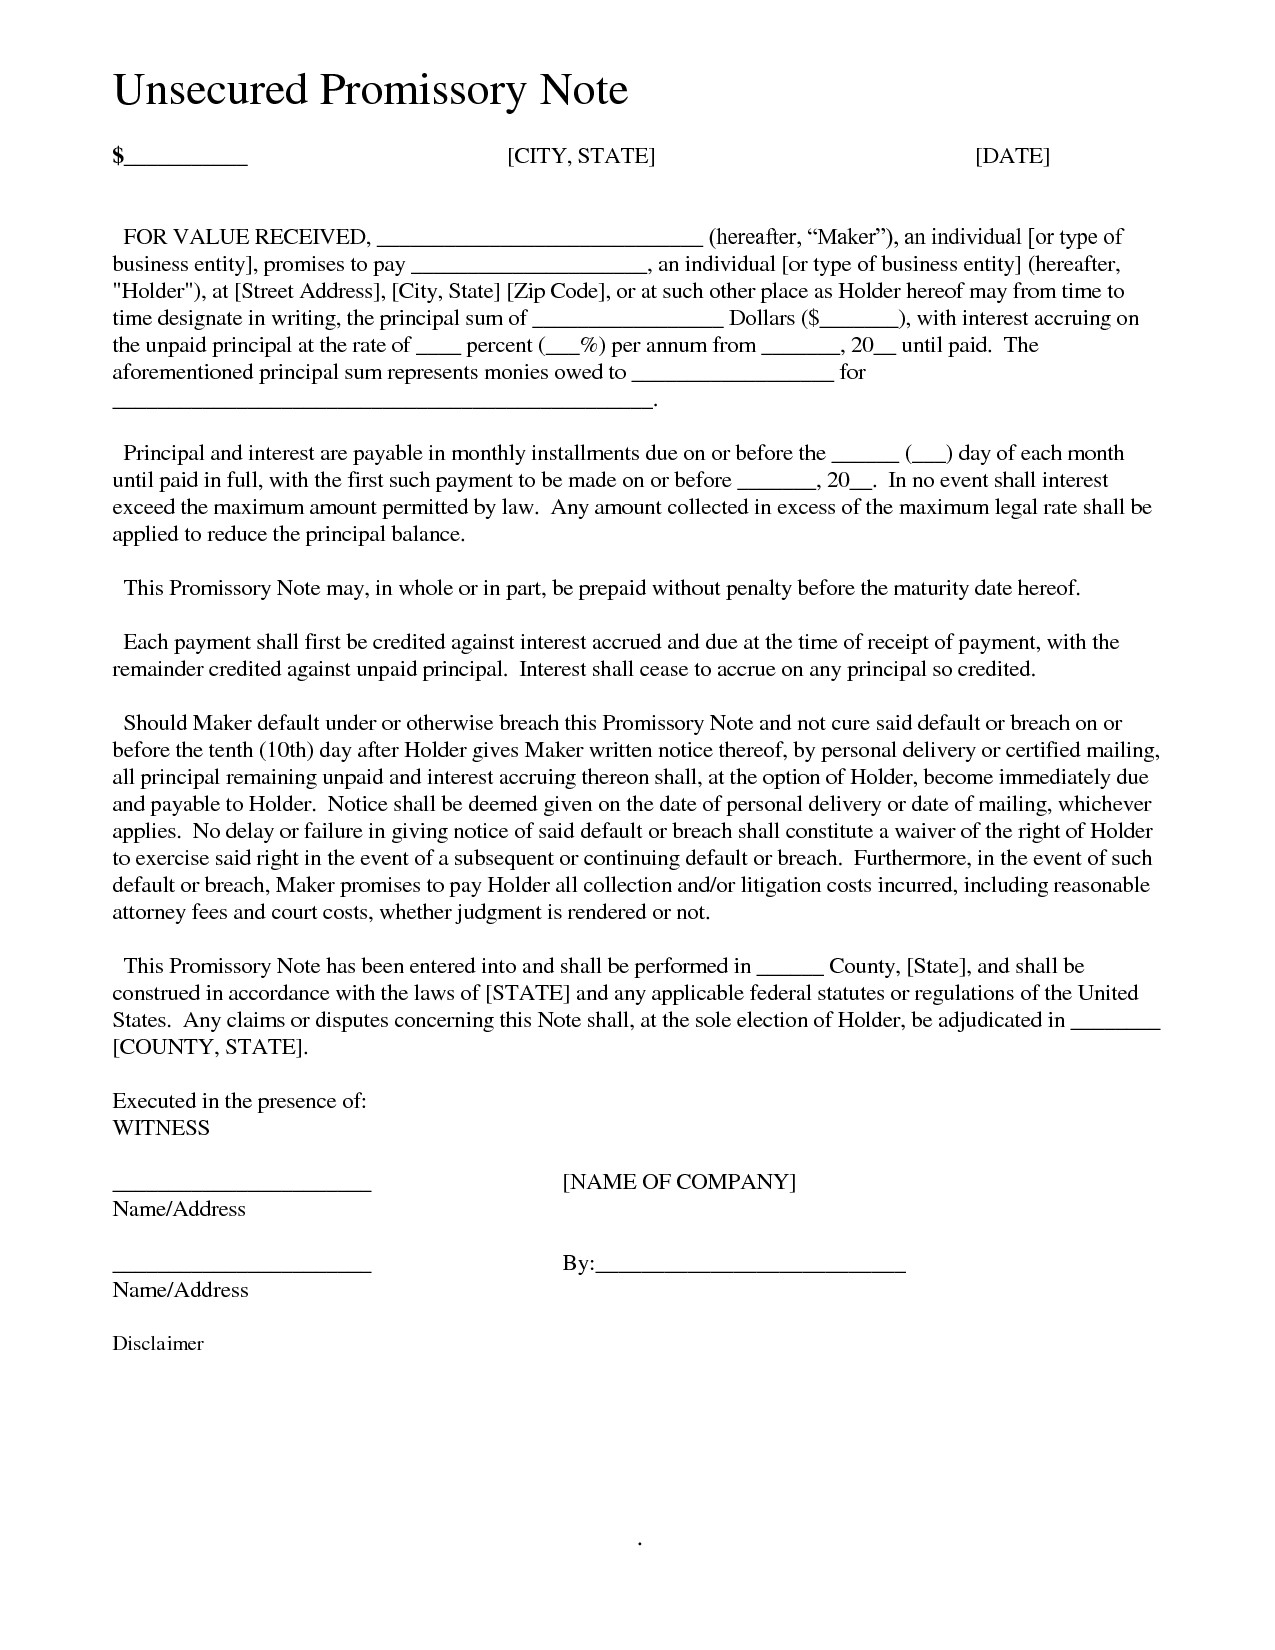 Sponsorship Letter Template Word - Salary Certificate Sample In Word format Copy Project Proposal